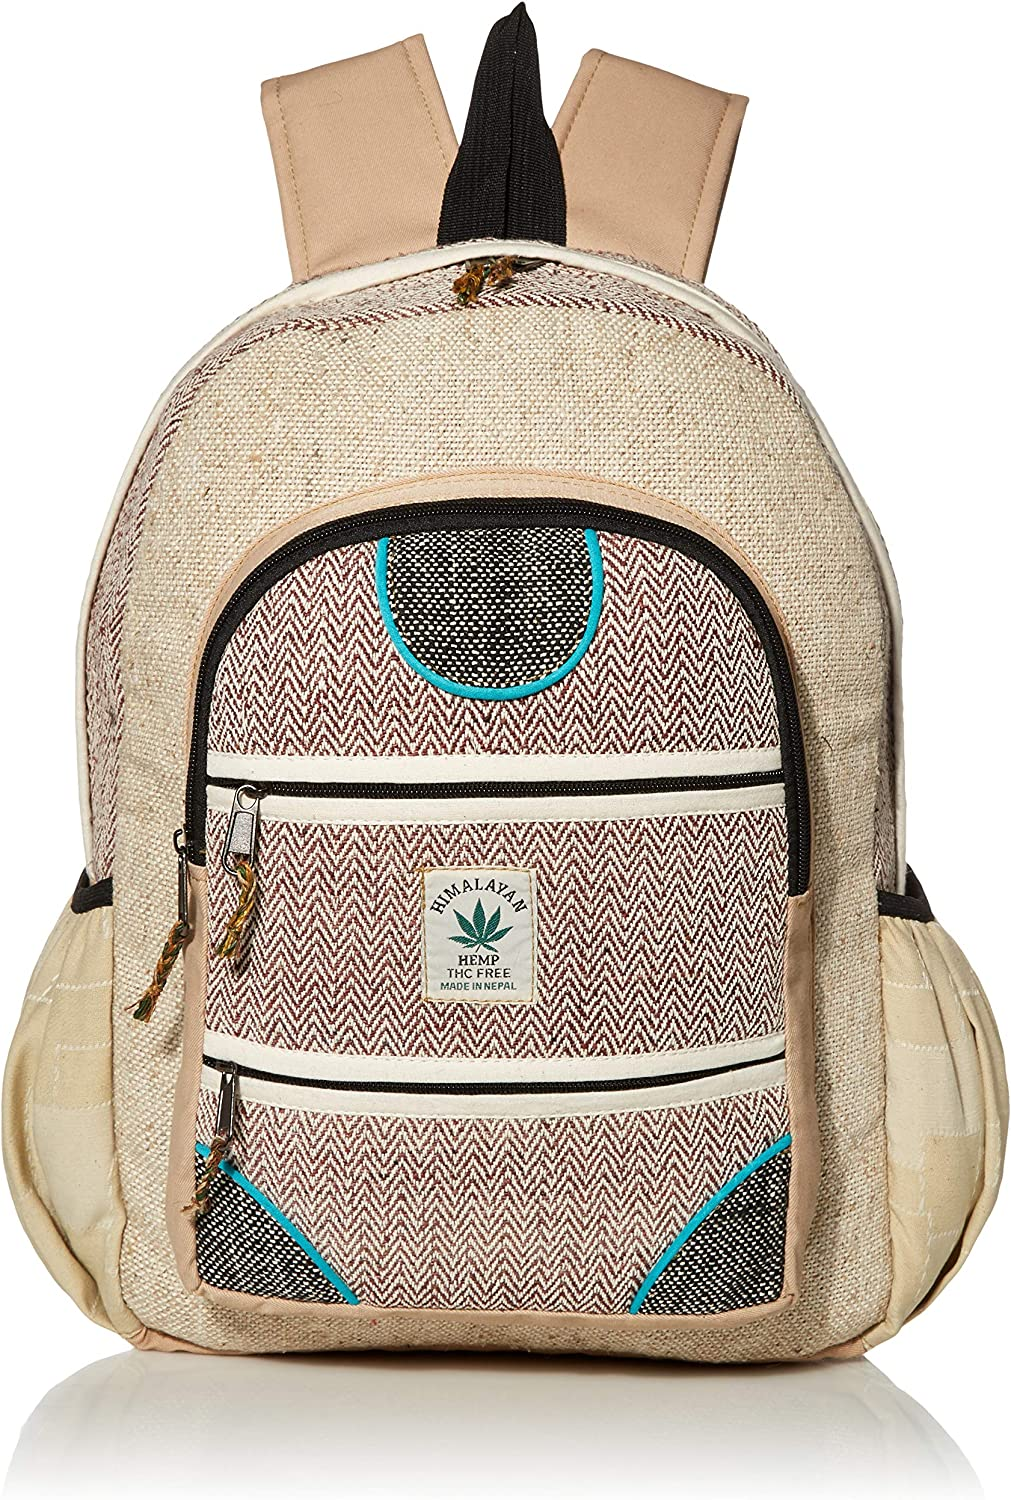 All Natural 100% Pure Hemp Multi Pocket Backpack (THC FREE) with Laptop Sleeve - Fashion Cute Travel School College Shoulder Bag/Bookbags/Daypack